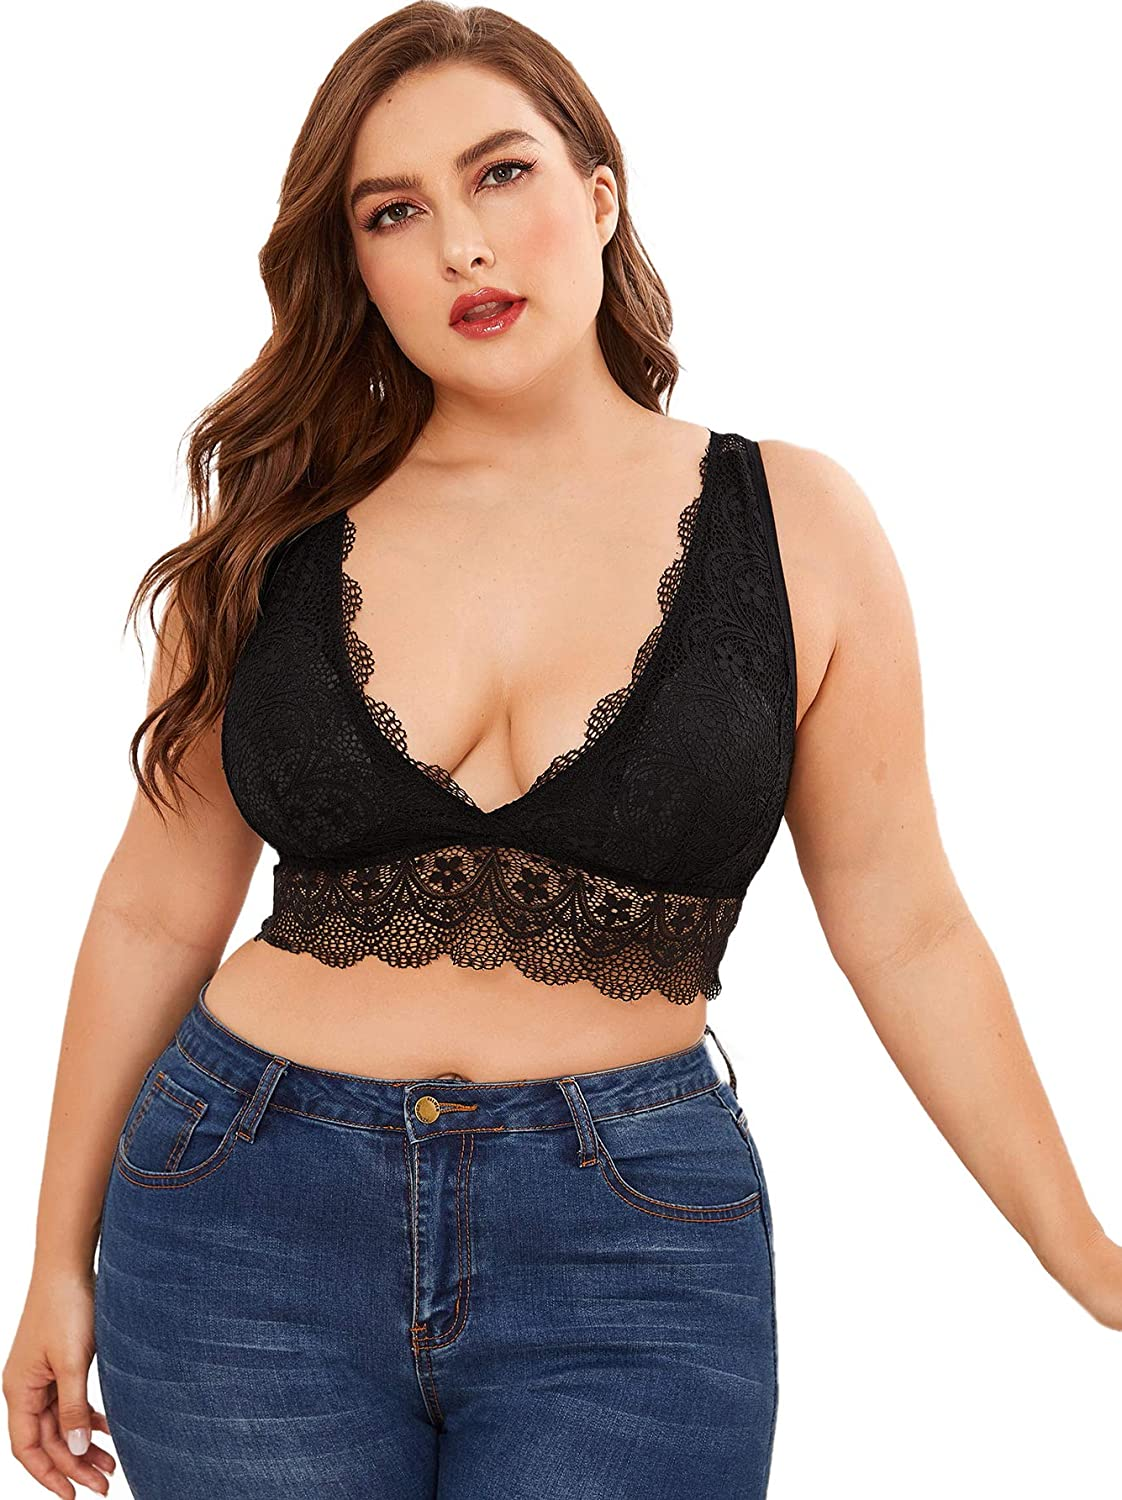 SOLY HUX Women's Plus Size Sexy Sheer Lace Strappy Bralette Bra Lingerie